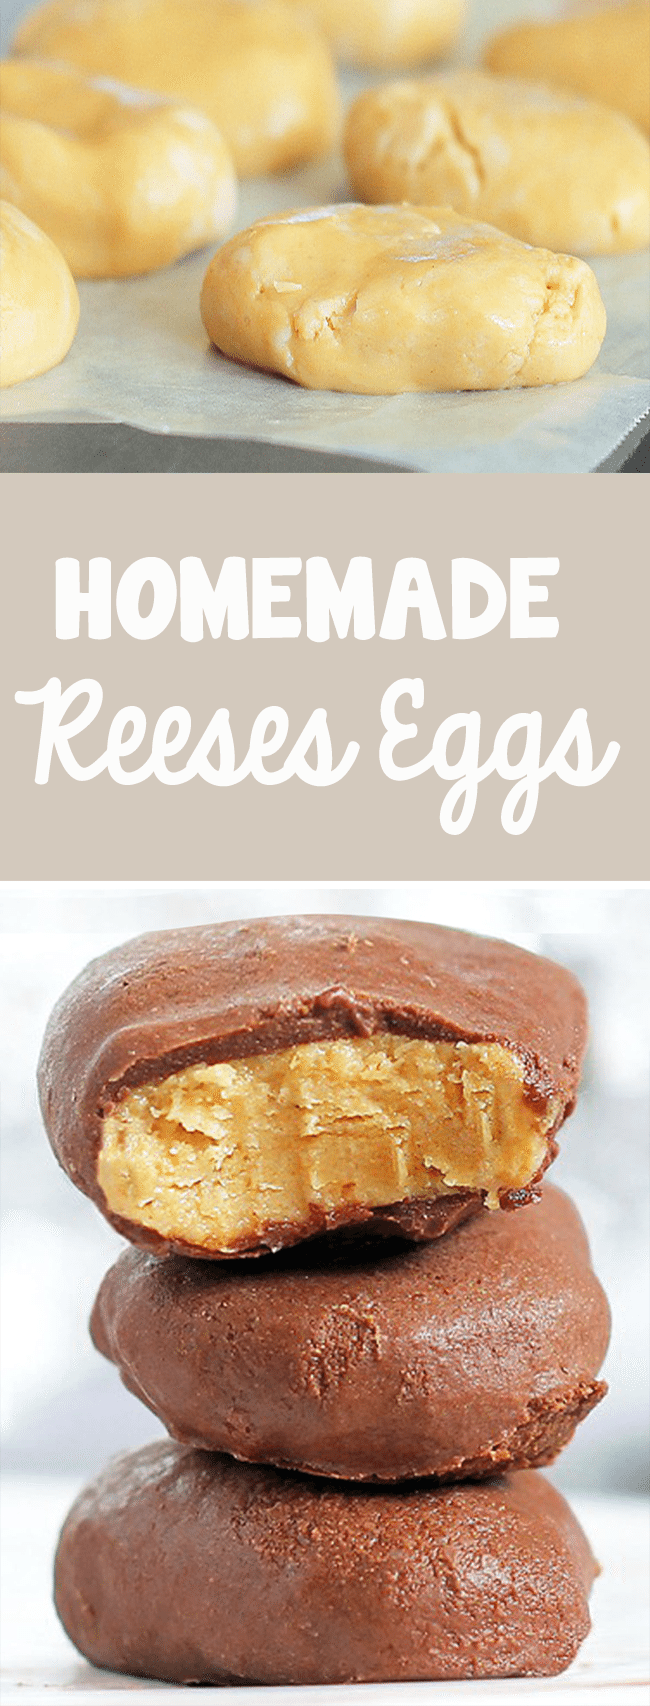 Just mix the ingredients, form shapes, and dip in chocolate. 5 minutes and you're done! @choccoveredkt... Full recipe: http://chocolatecoveredkatie.com/2012/03/29/copycat-recipe-reeses-peanut-butter-eggs/